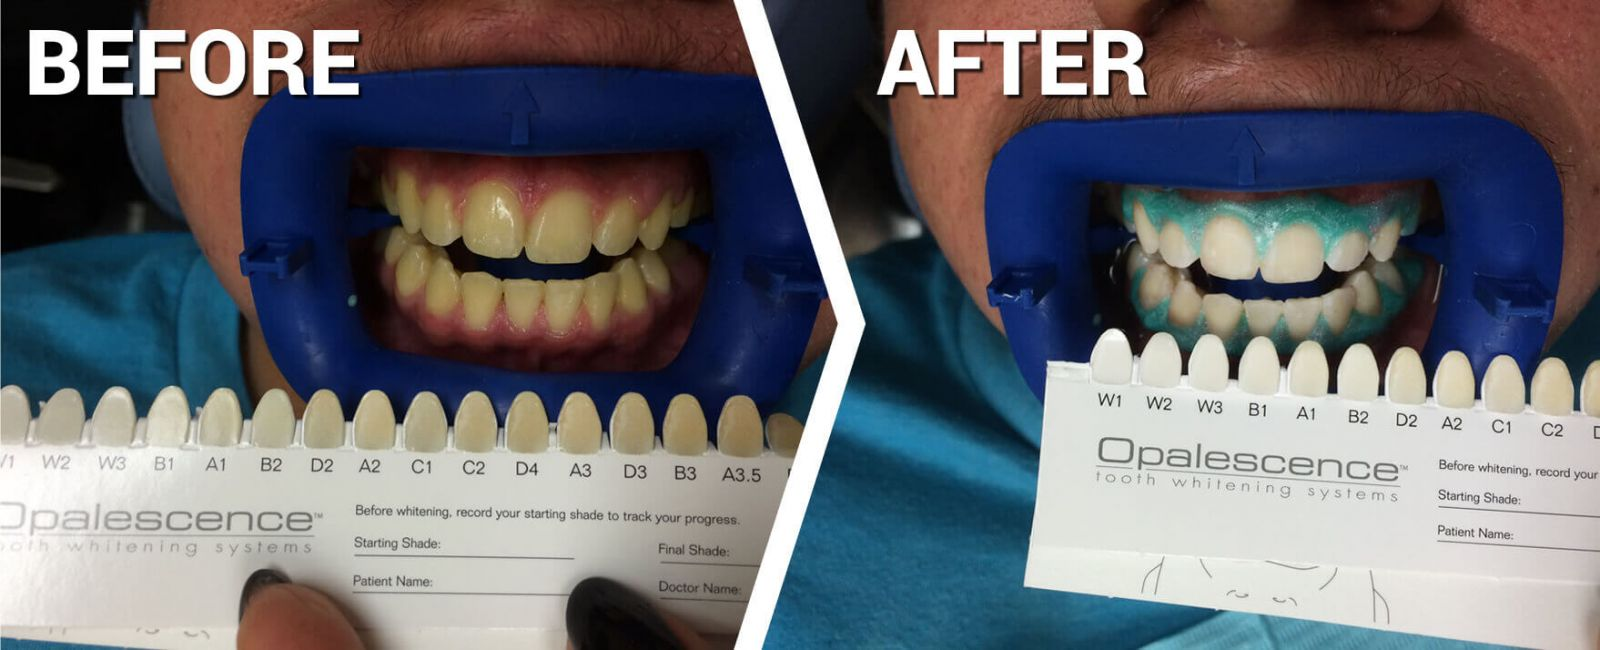 Teeth whitening promotion - before and after